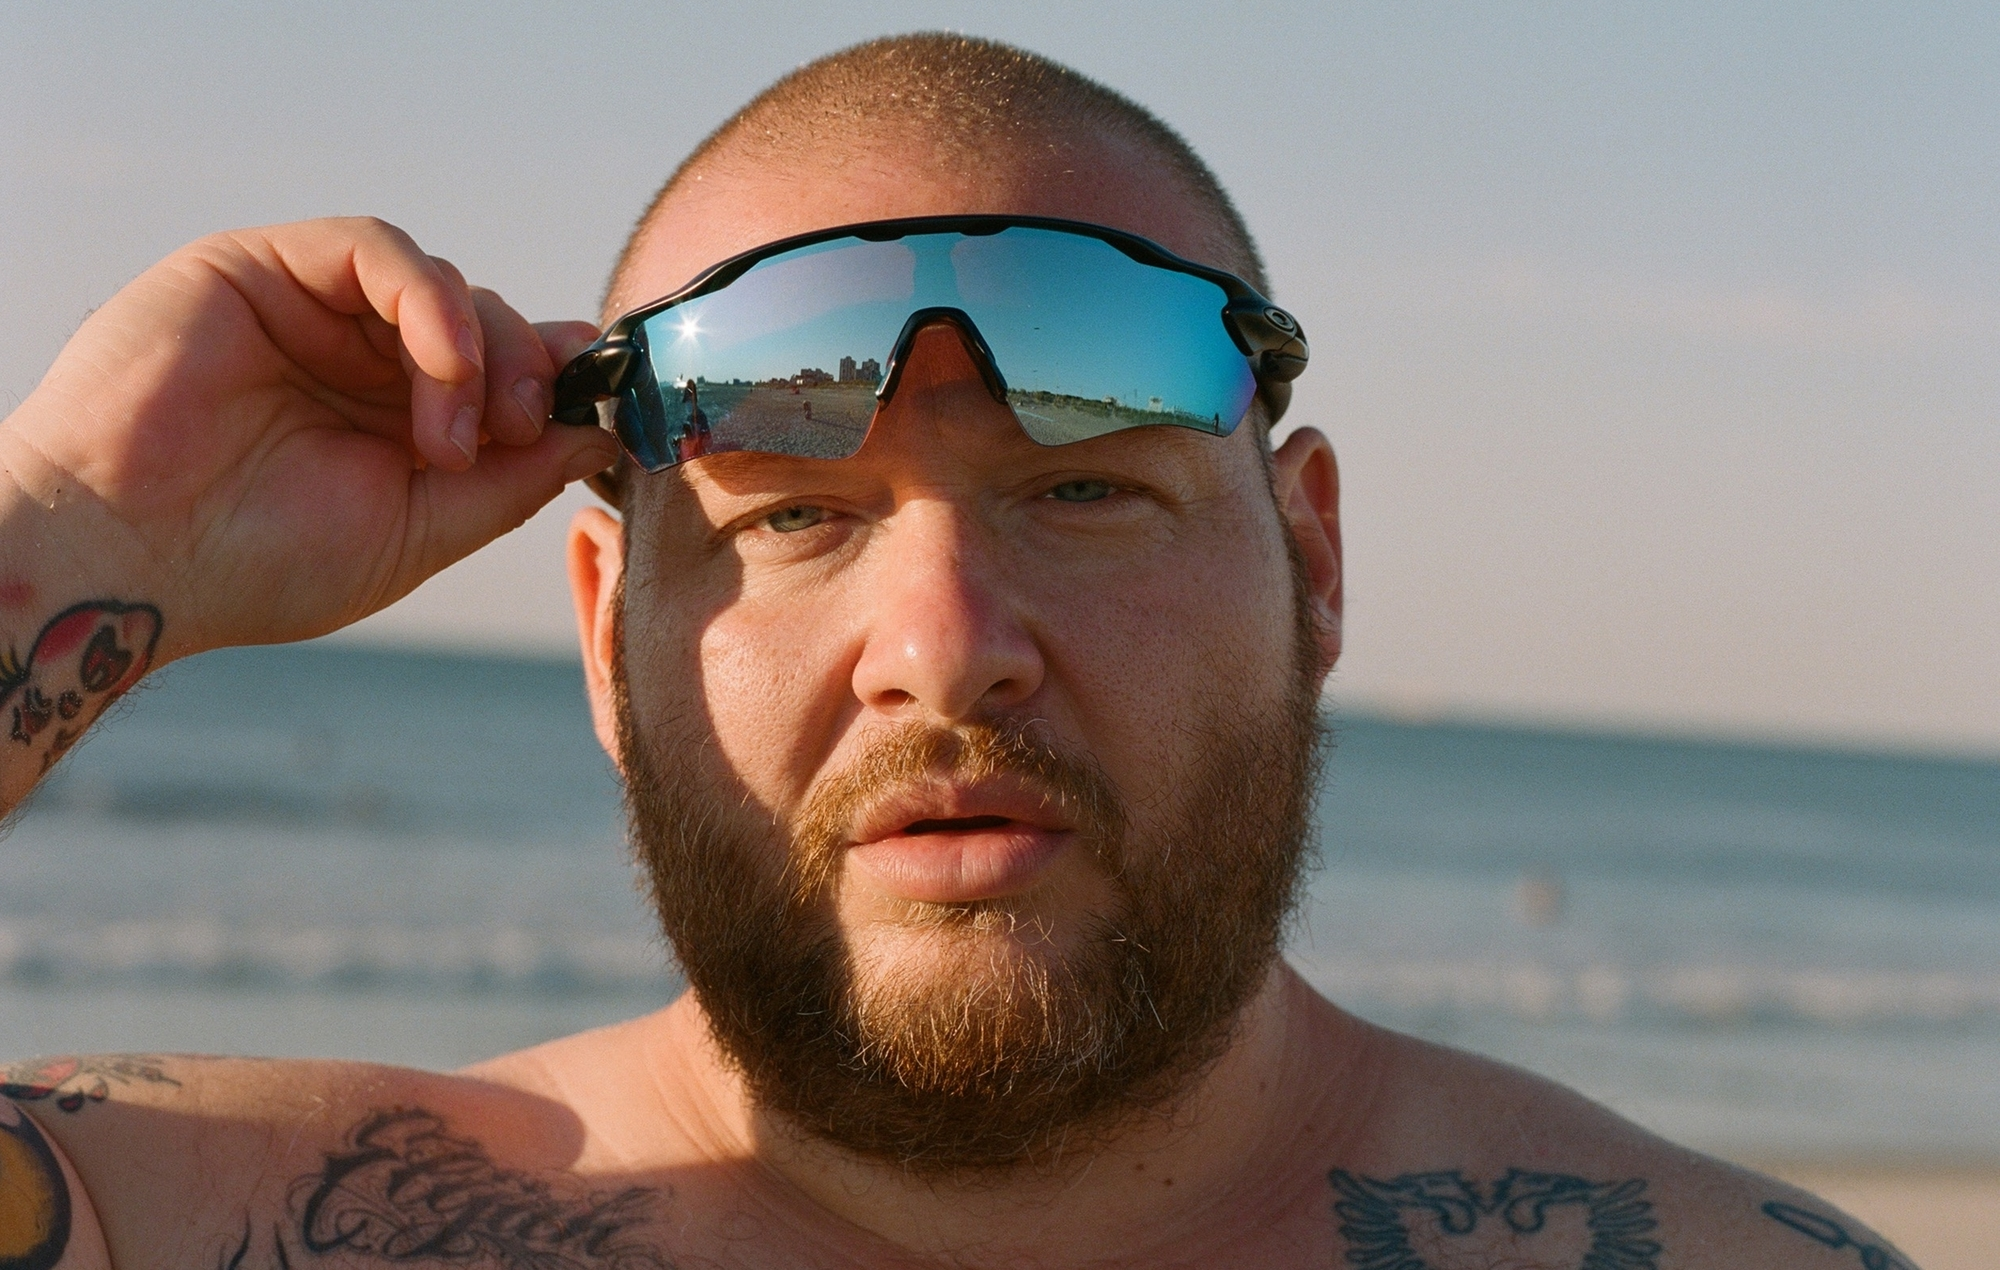 Action Bronson talks working with Mac Miller, auditioning for The Matrix 4, and doing whatever he wants